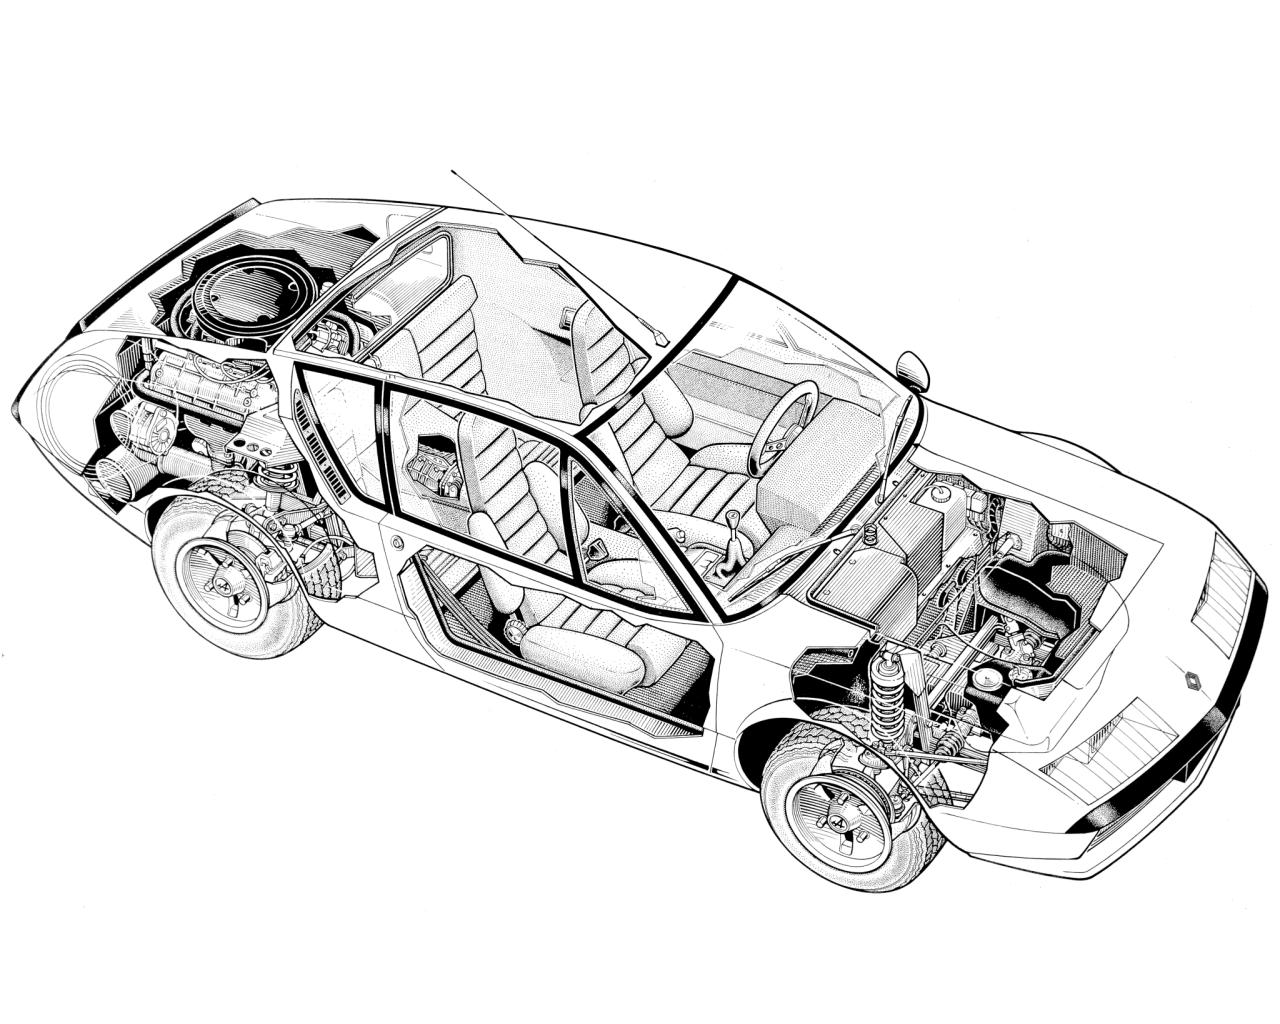 3 Cylinder Racing Engine moreover Volvo XC90 further Chevelle Brake Line Diagram 024e37b8c3ab9114 together with Jaguar S Type Engine Diagram as well Car Detail. on daihatsu 2 cylinder car